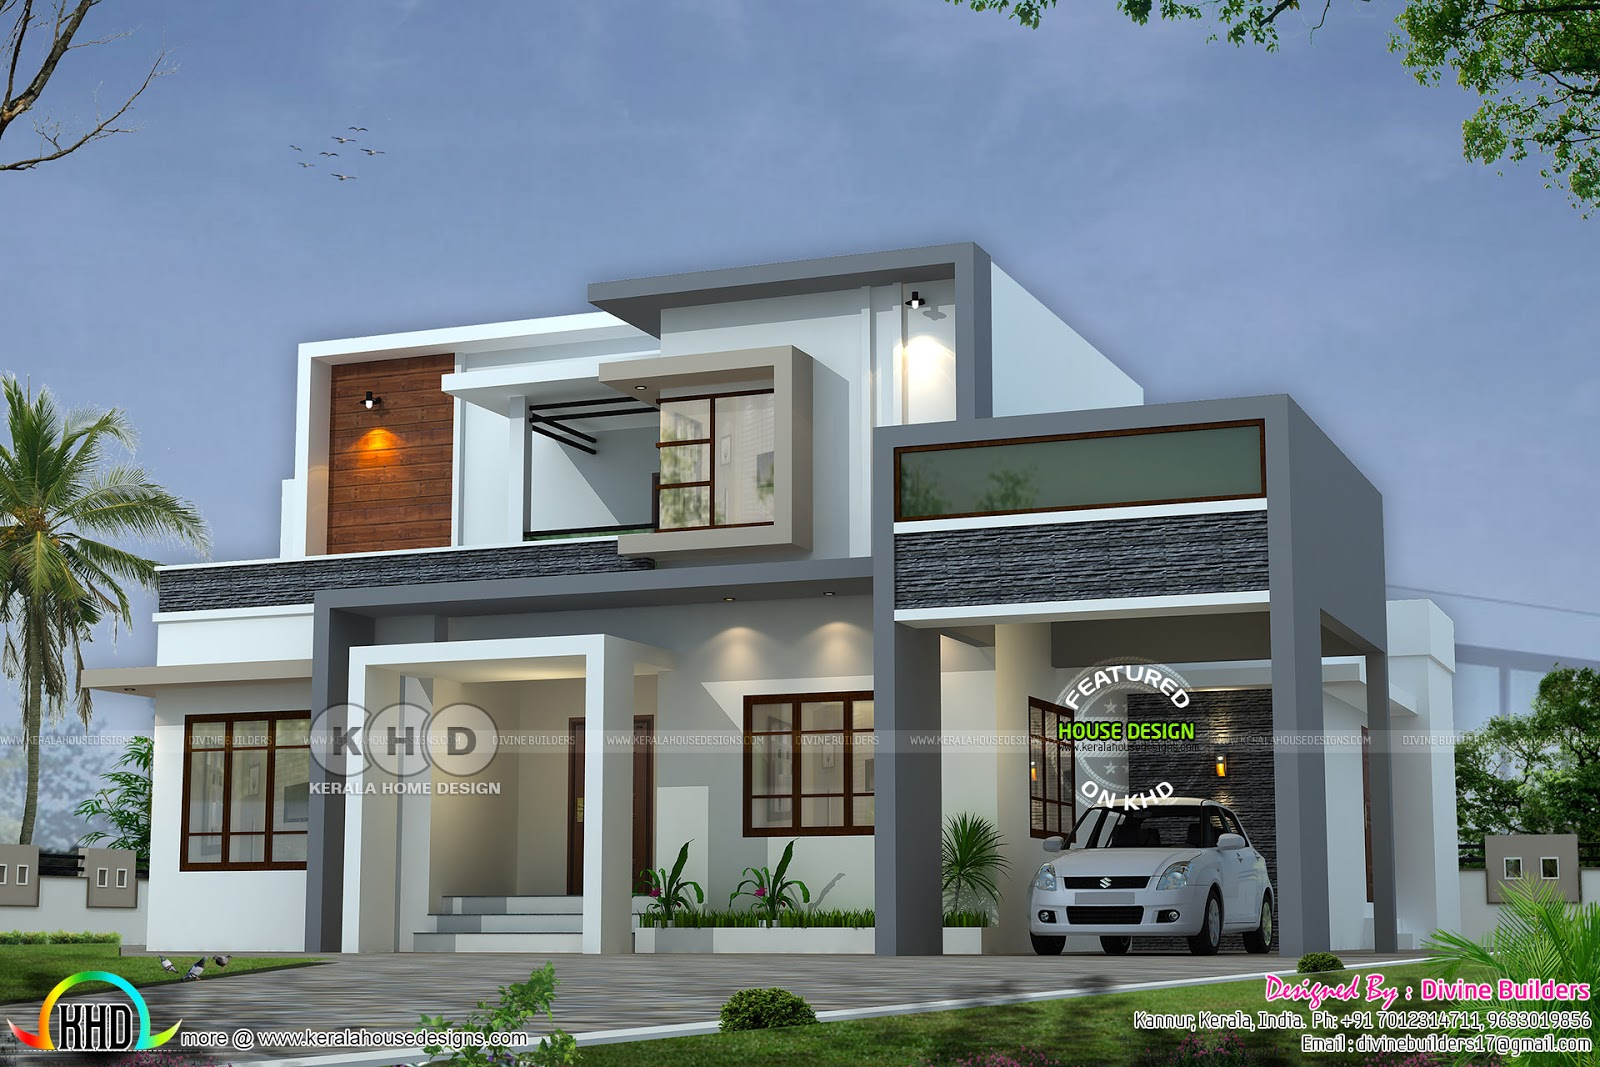 2017 kerala home design and floor plans for Home plans and designs with photos